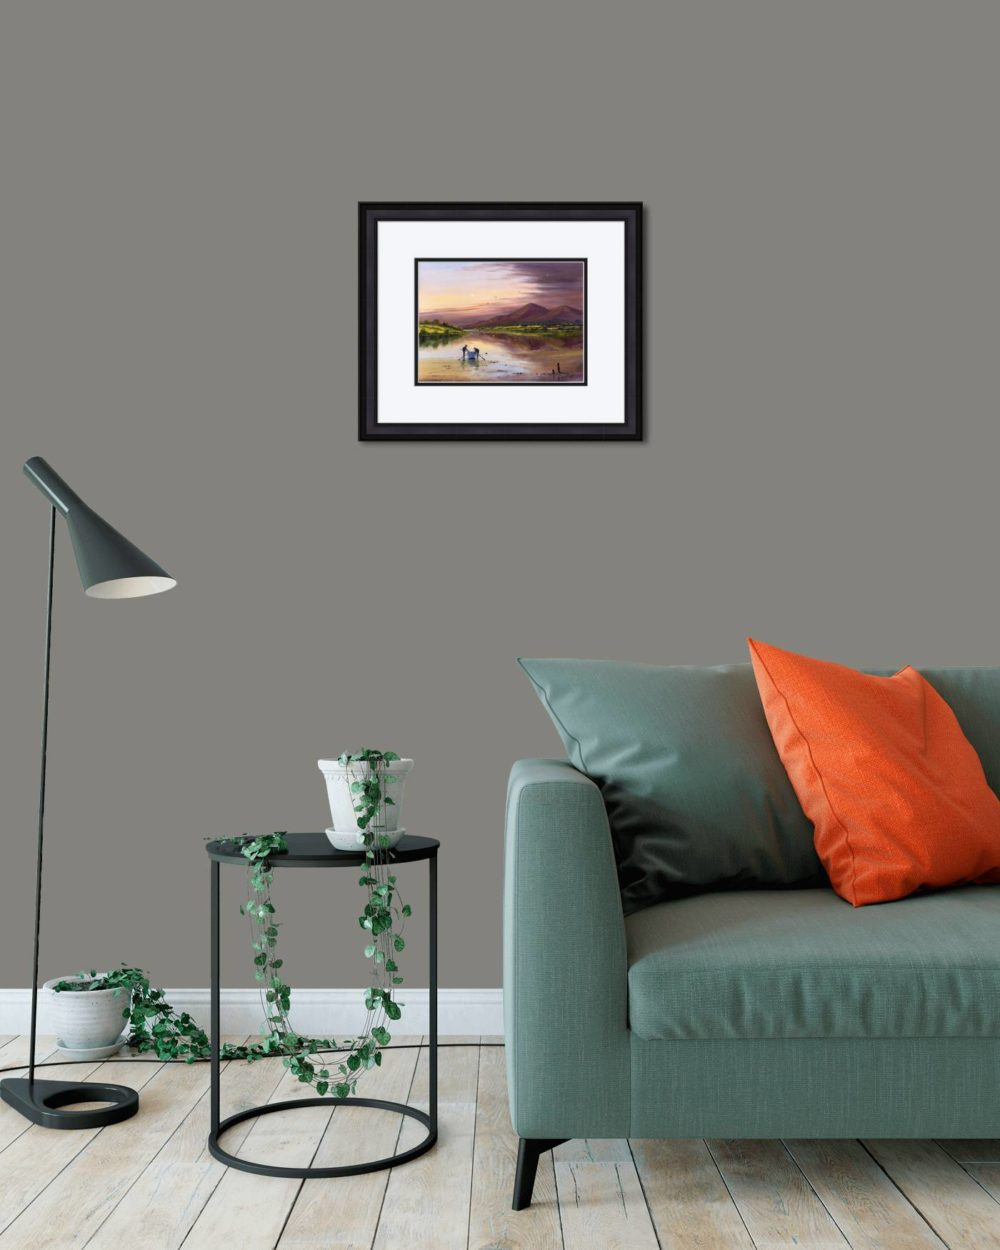 Dundrum Bay Print (Small) in Black Frame in Room